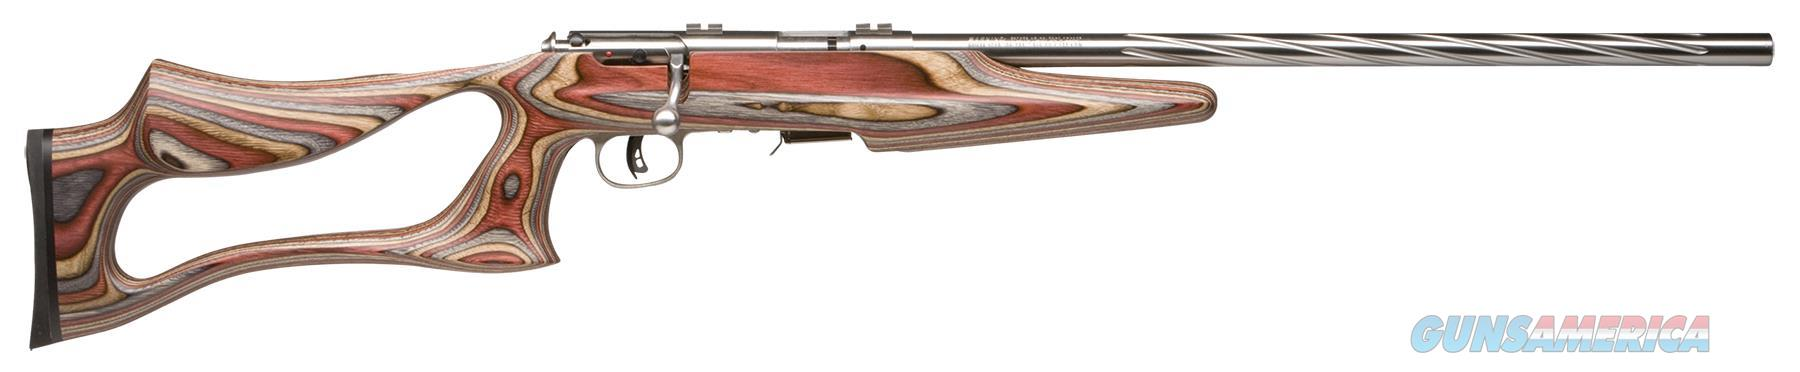 "SAVAGE ARMS 93R17 BSEV 17HMR 21"" 96771  Guns > Rifles > Savage Rifles > Standard Bolt Action > Sporting"